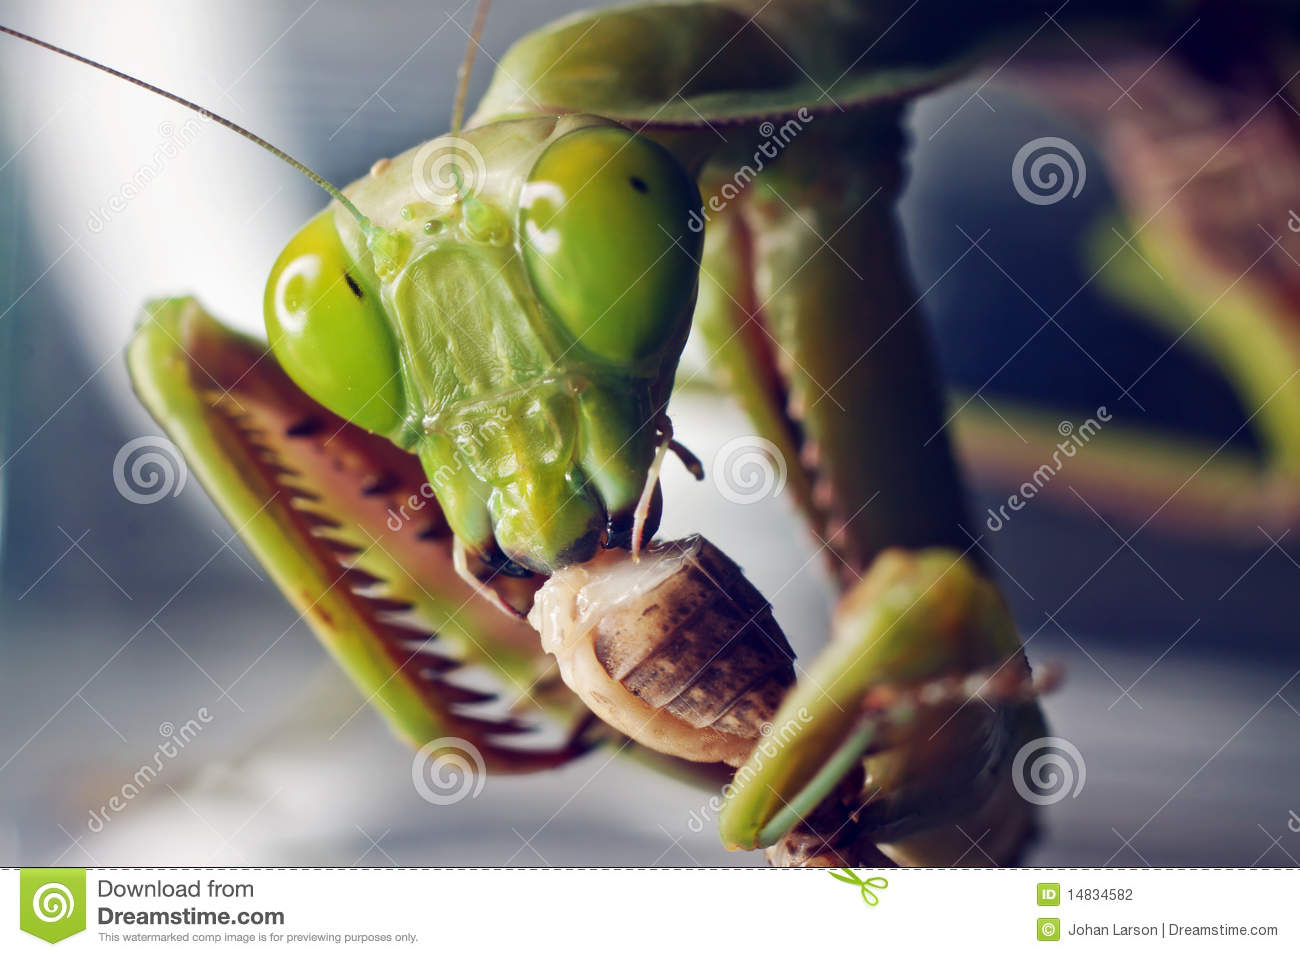 Macro shot of a Praying mantis eating a cricket